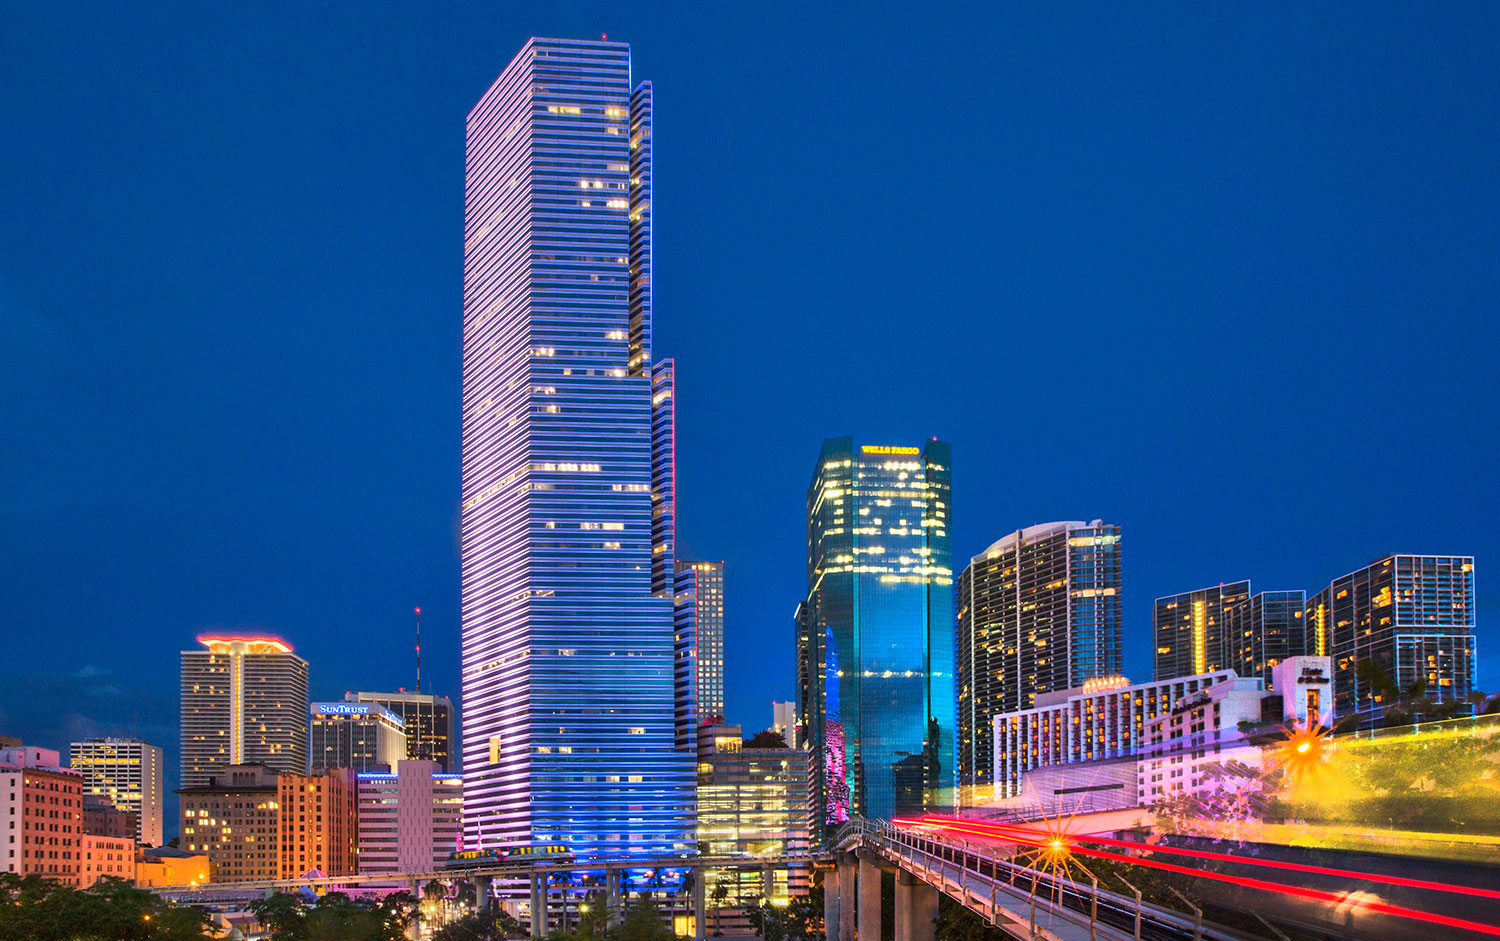 City National Bank & UBS Lease 142,000 SF Of Office Space Valued At $75.1 Million At Miami Tower